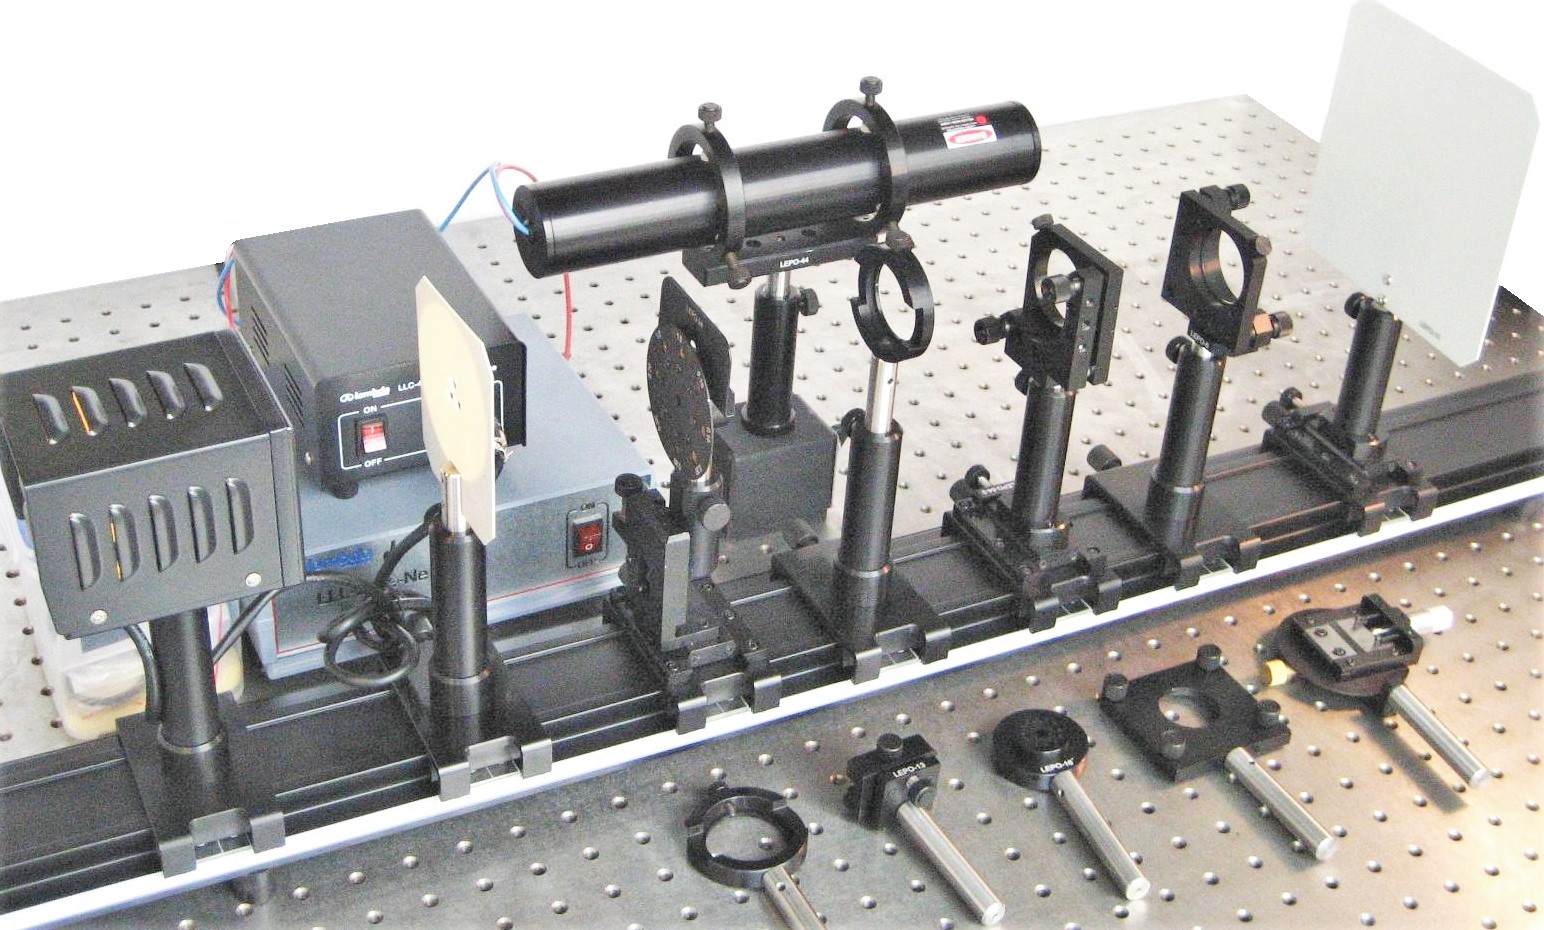 LEOK-1 Optics Experiment Kit - Basic Model